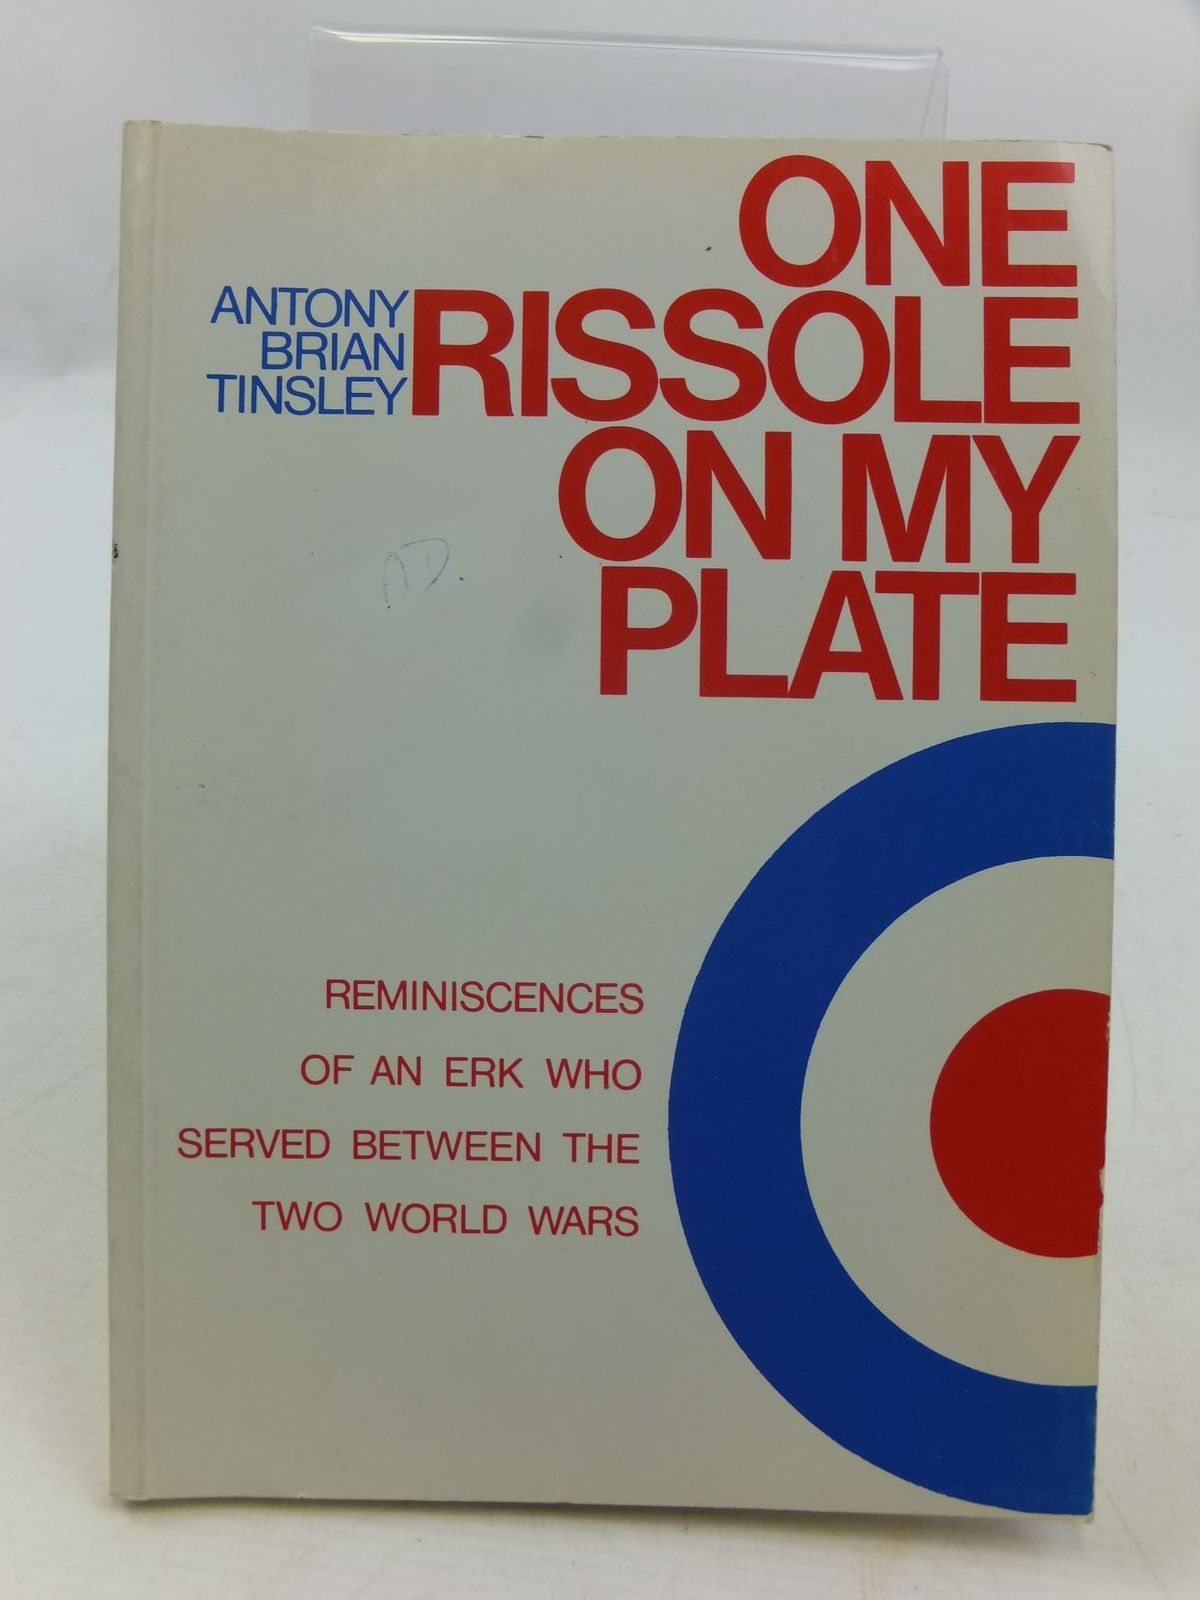 Photo of ONE RISSOLE ON MY PLATE REMINISCENCES OF AN ERK WHO SERVED BETWEEN THE TWO WORLD WARS written by Tinsley, Antony Brian published by Merlin Books Ltd. (STOCK CODE: 1708436)  for sale by Stella & Rose's Books